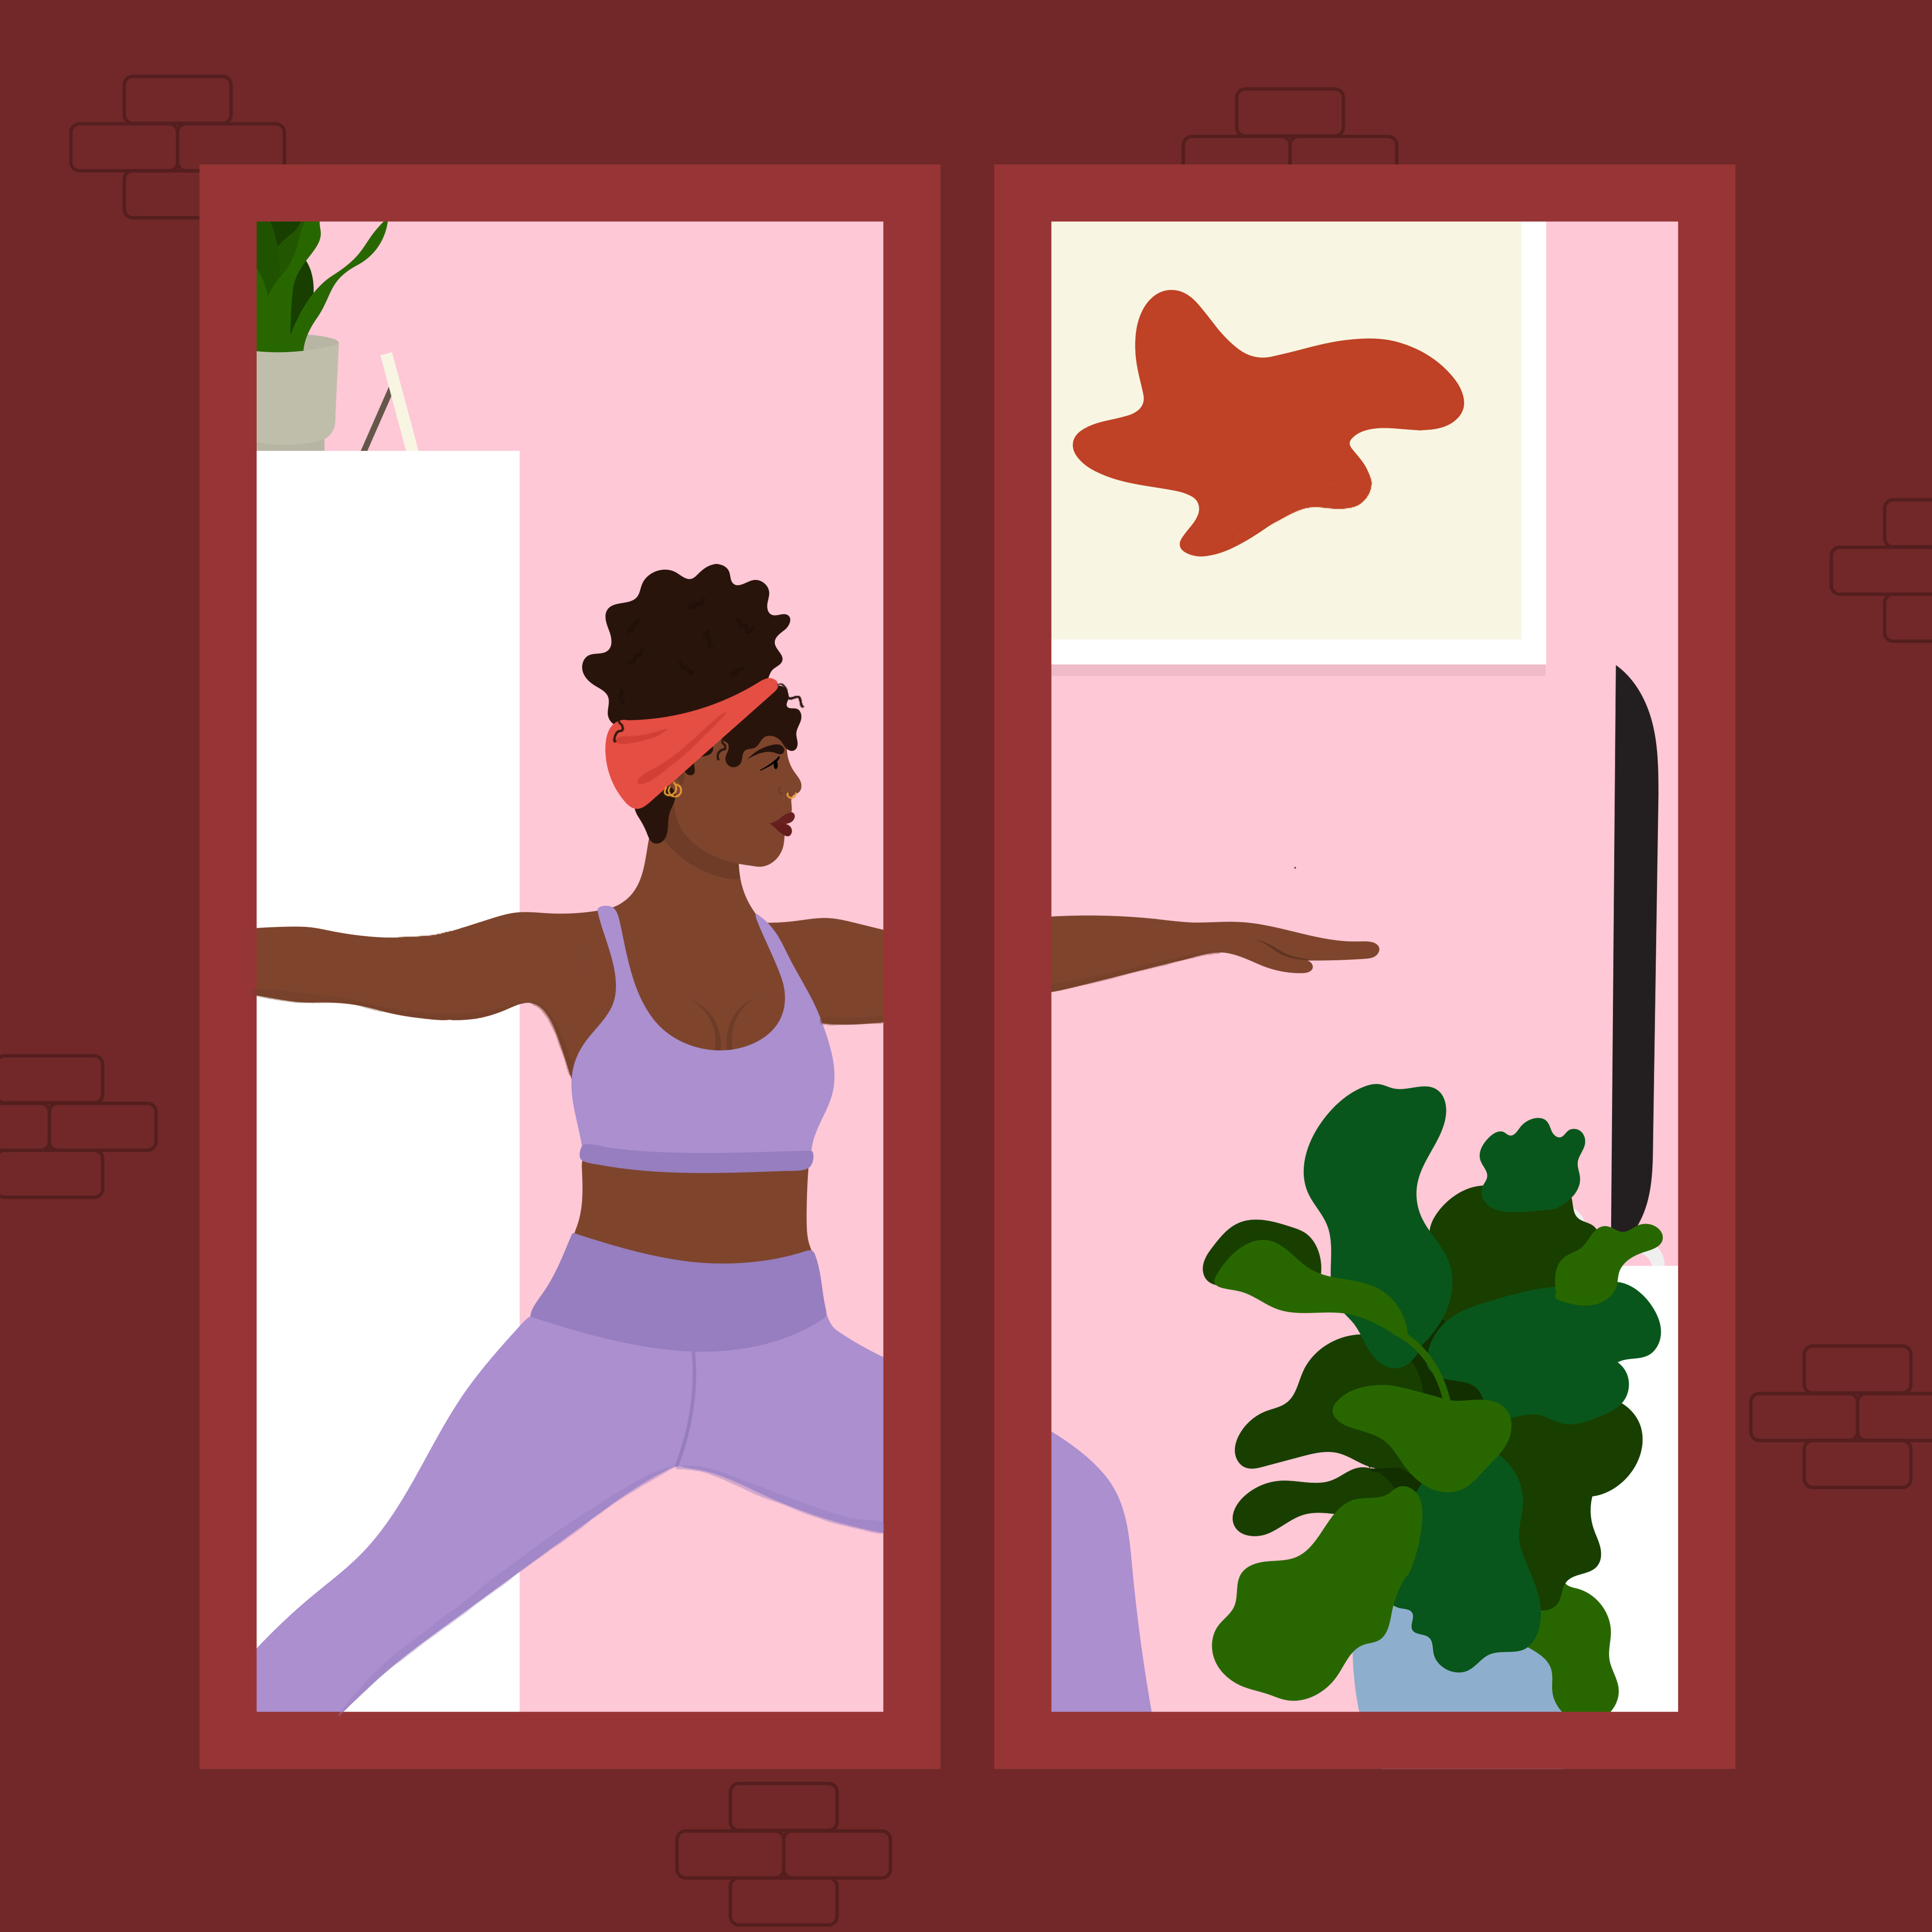 A view of a woman doing yoga through the windows of a red building.